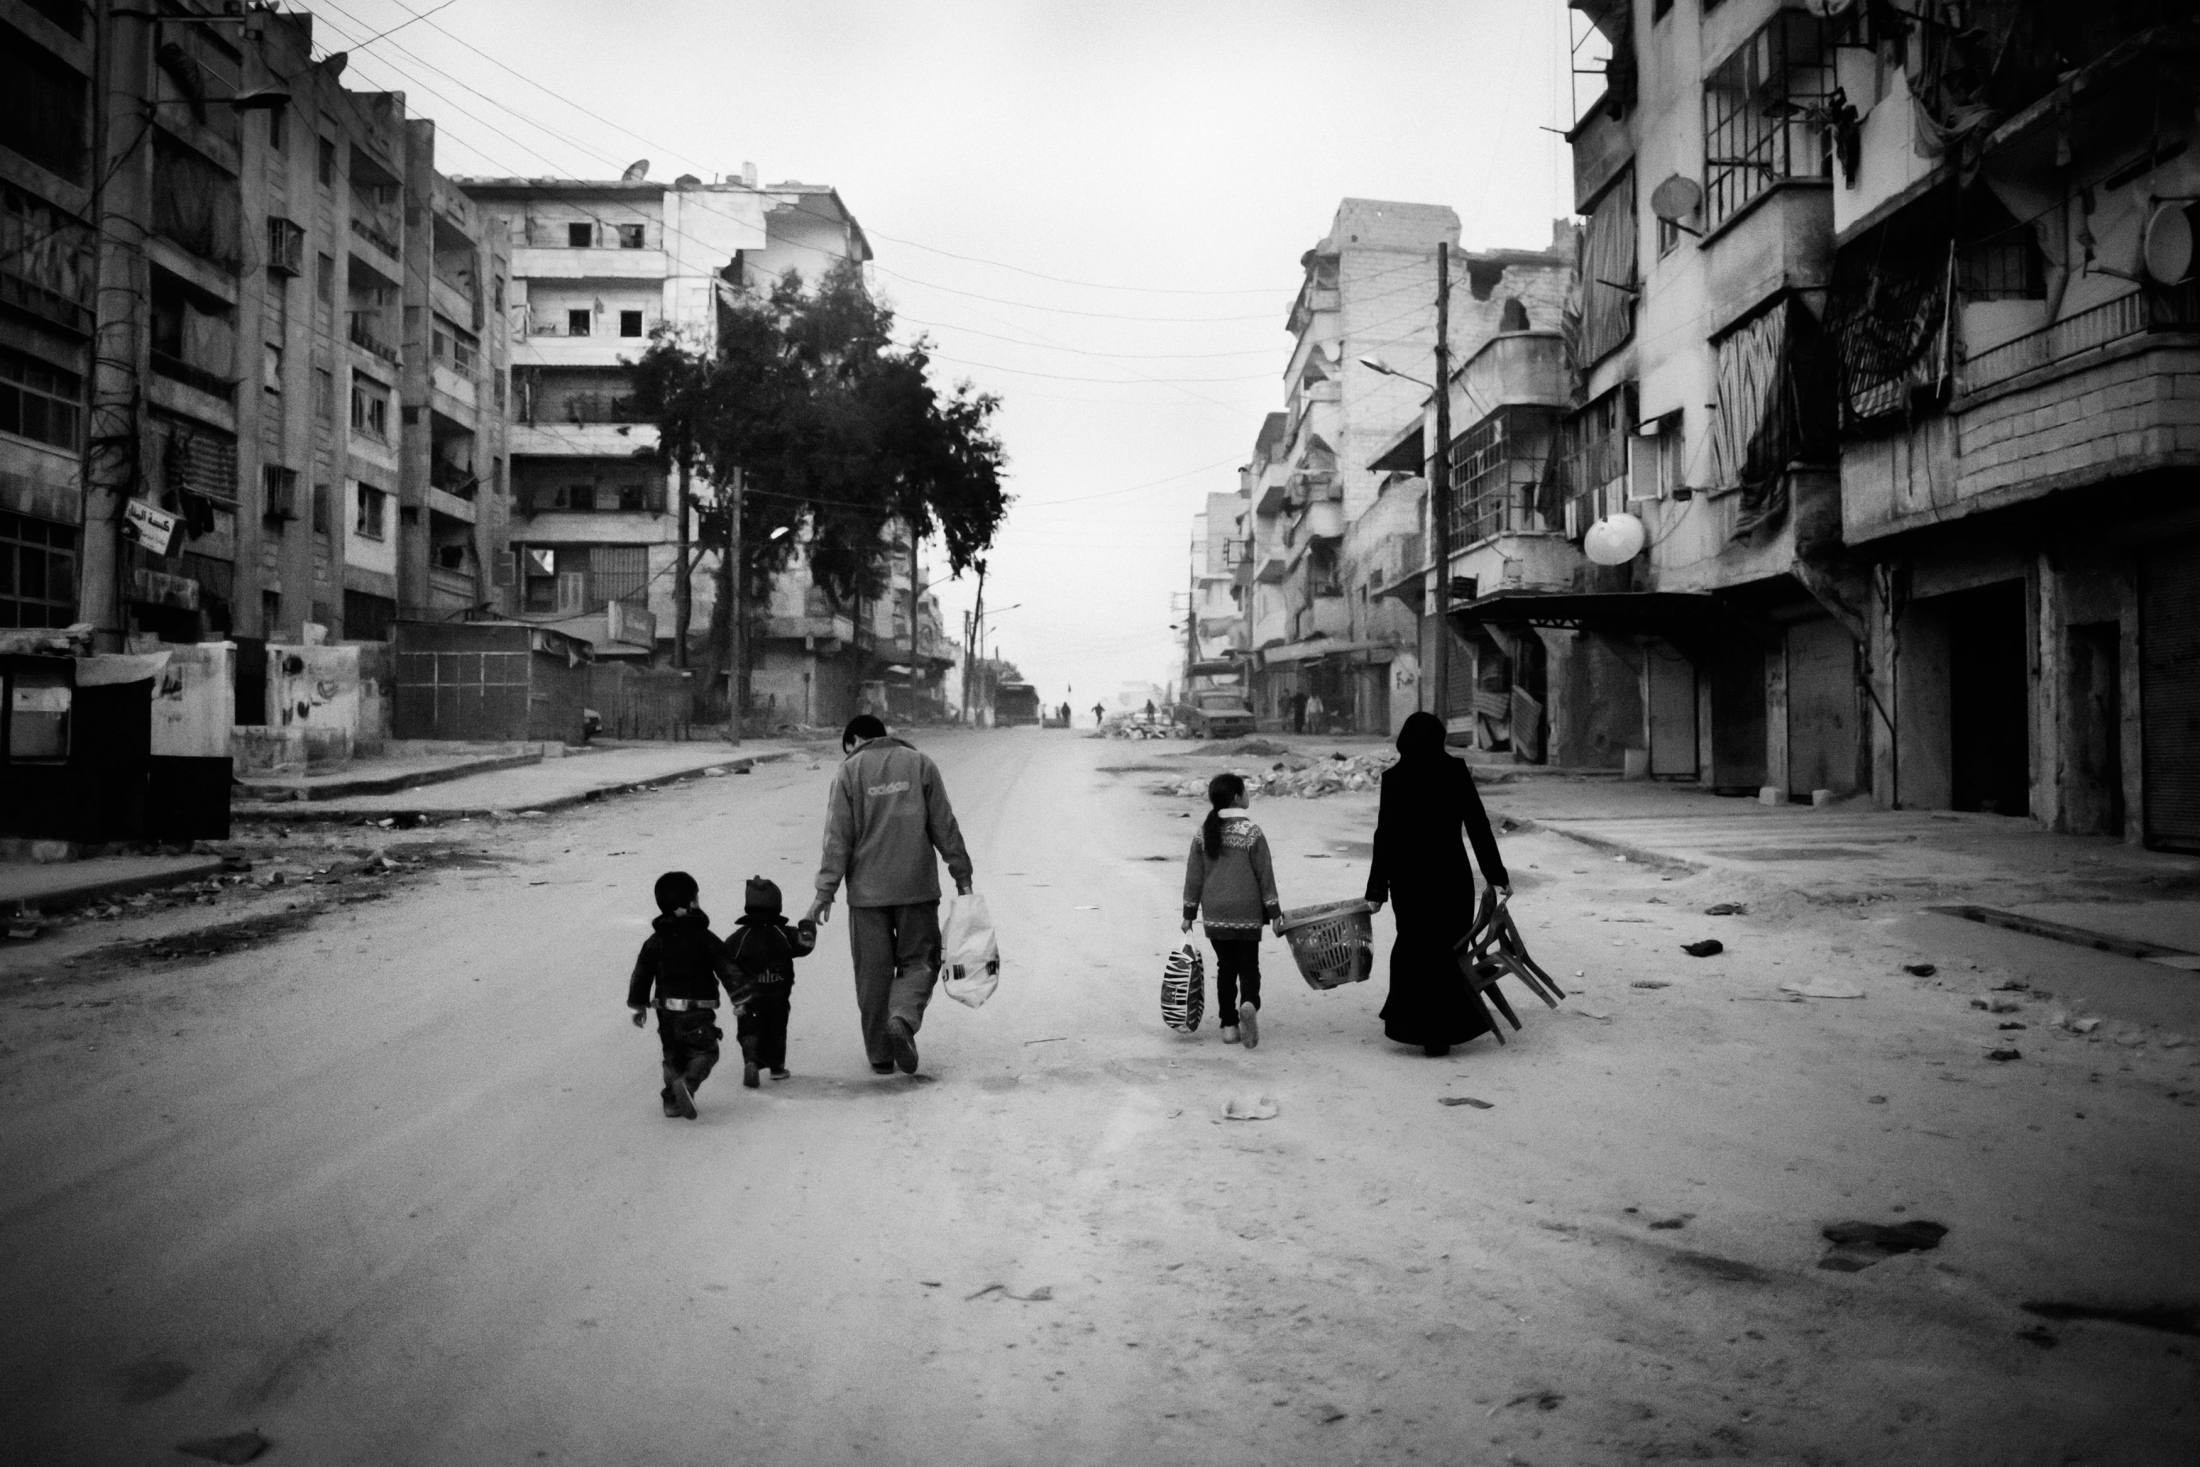 """A family walking through the streets in the Al-Amriyah neighborhood of Aleppo after take the last belongings that they rescue from their destroyed house, Syria, Wednesday, Jan. 2, 2013. The United Nations estimated that more than 400,000 people have been killed in Syria's 60-month-old uprising against authoritarian rule, a toll one-third higher than what anti-regime activists had counted. The U.N. human rights chief called the toll """"truly shocking."""" Copyright: Spanish Photojournalist Andoni Lubaki"""